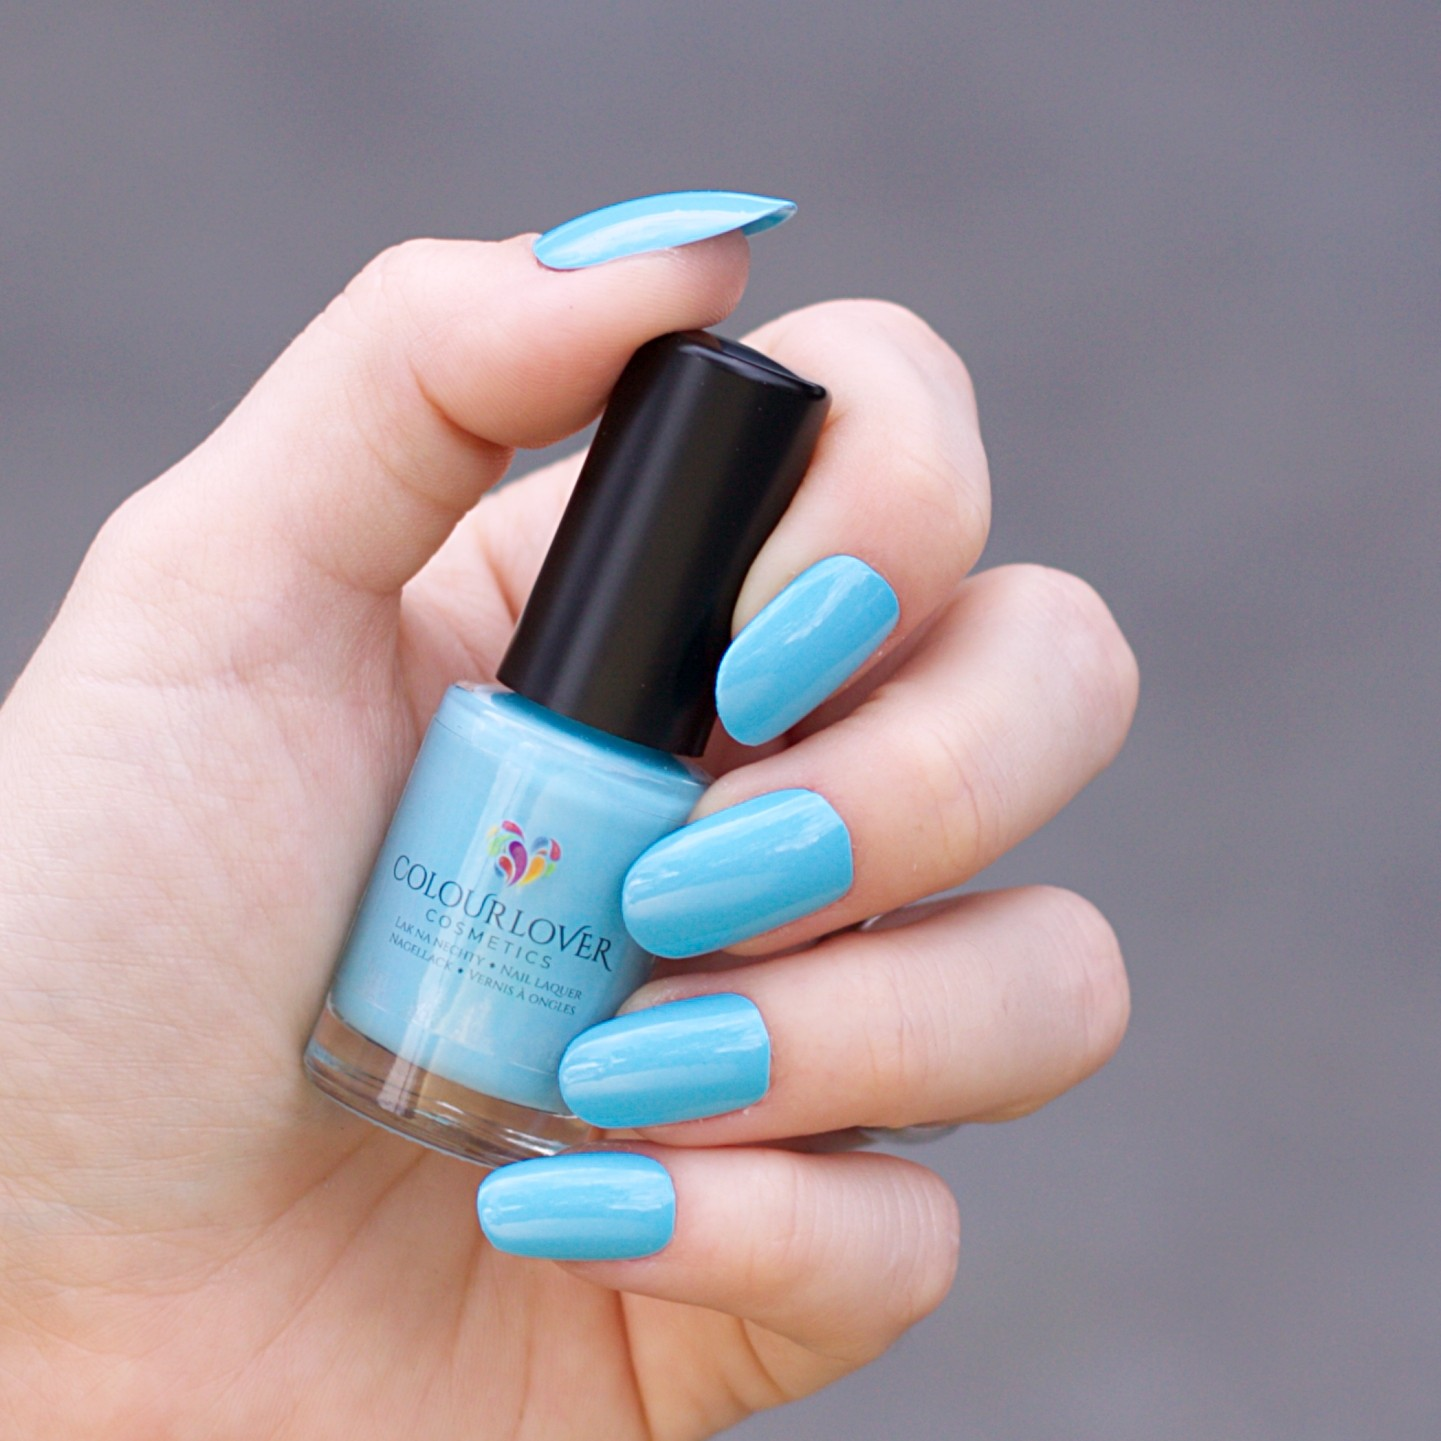 forget me not colour lover cosmetics